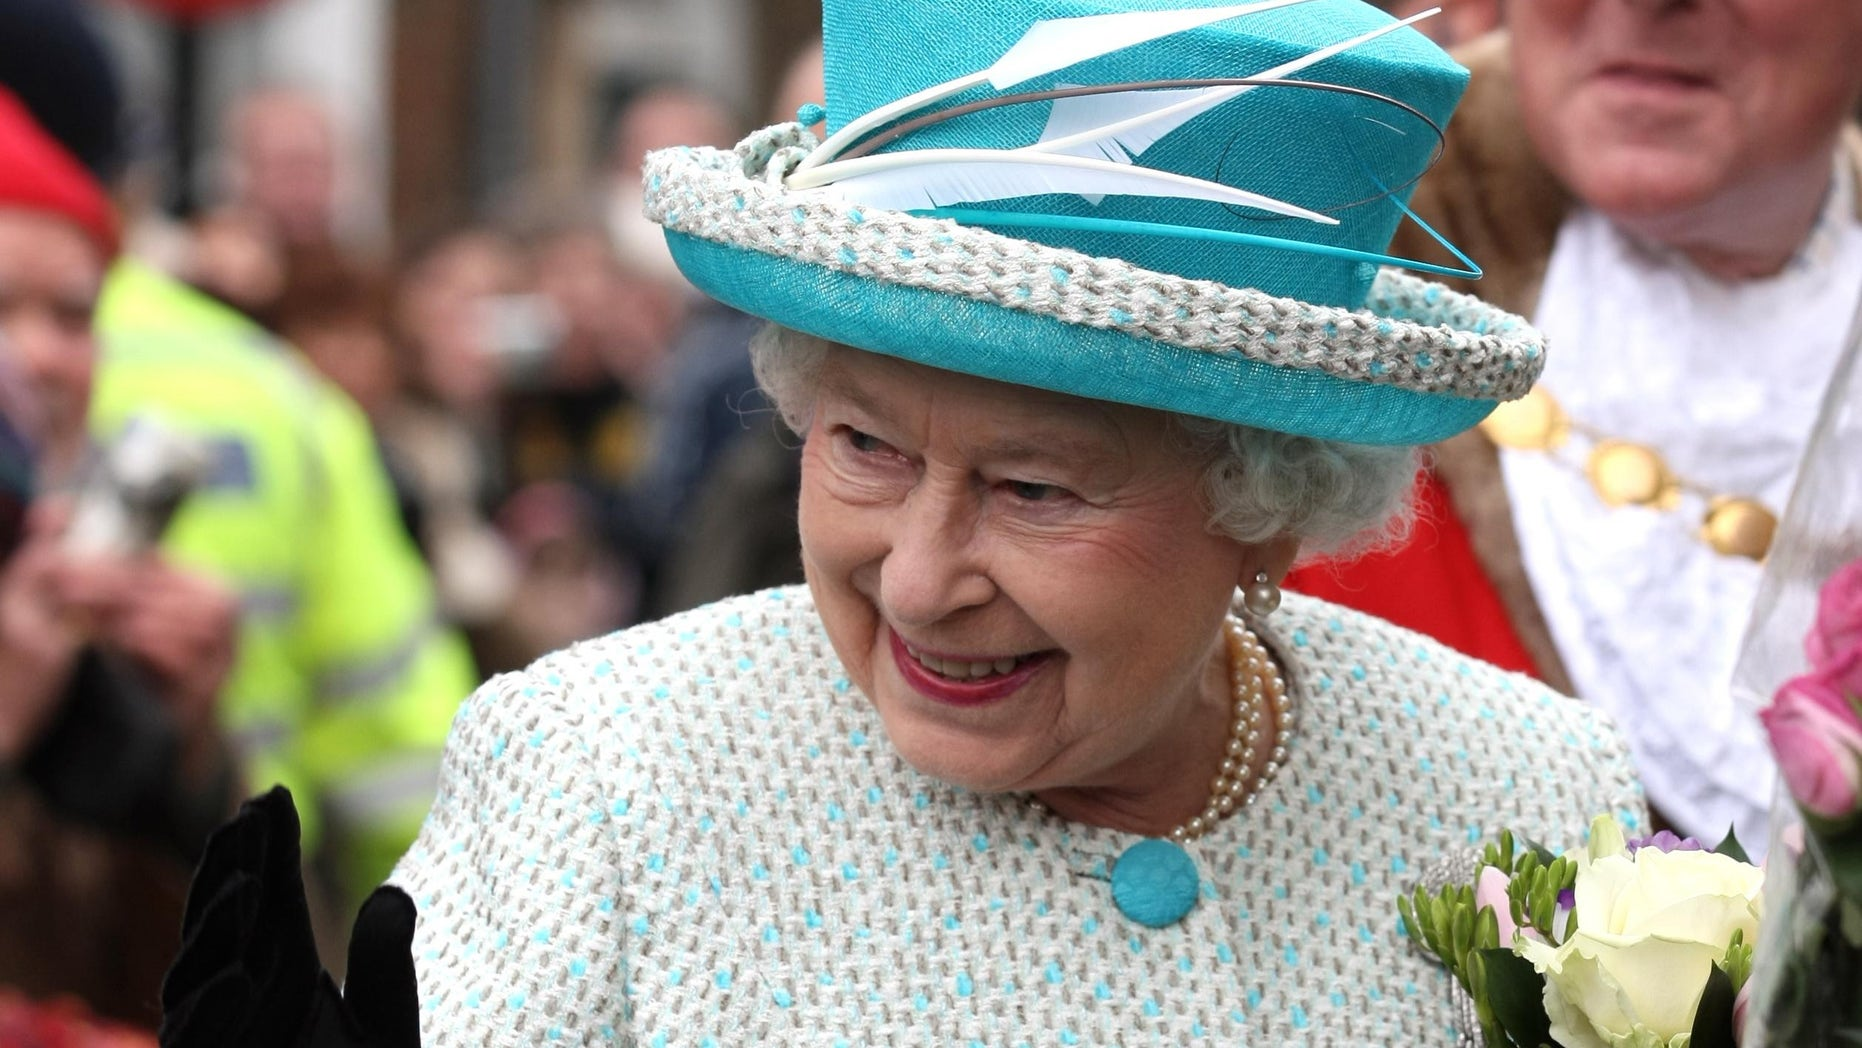 Feb. 6, 2012: Britain's Queen Elizabeth II, waves to wellwishers during a visit to Kings Lynn Town Hall in eastern England .